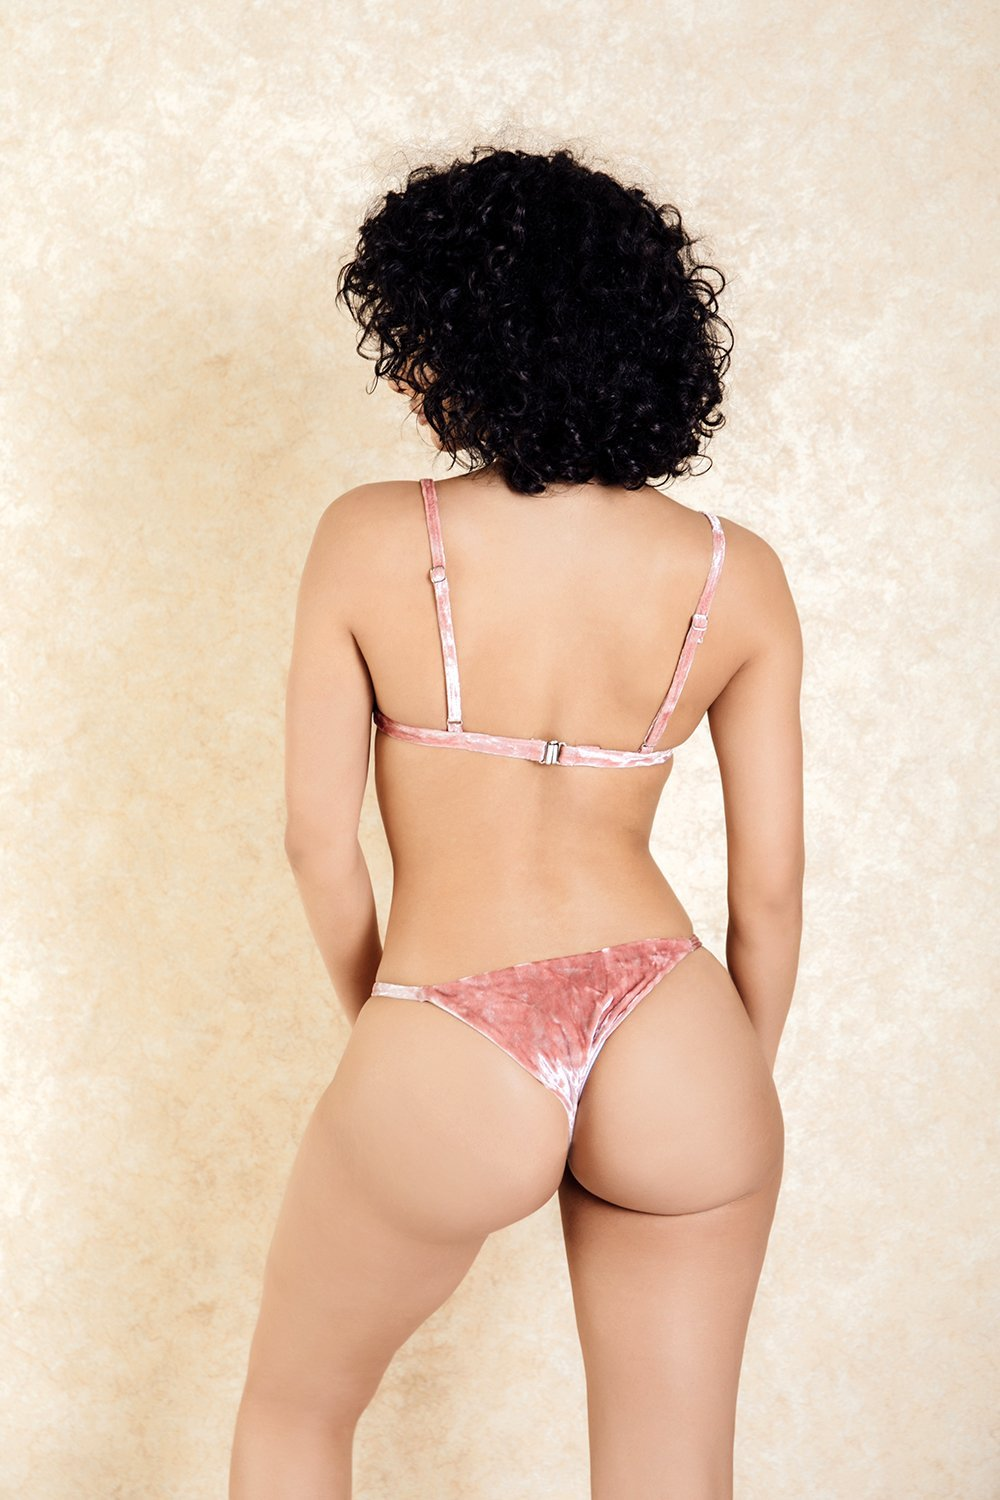 St Germain Pink Crushed Velvet Bikini Set